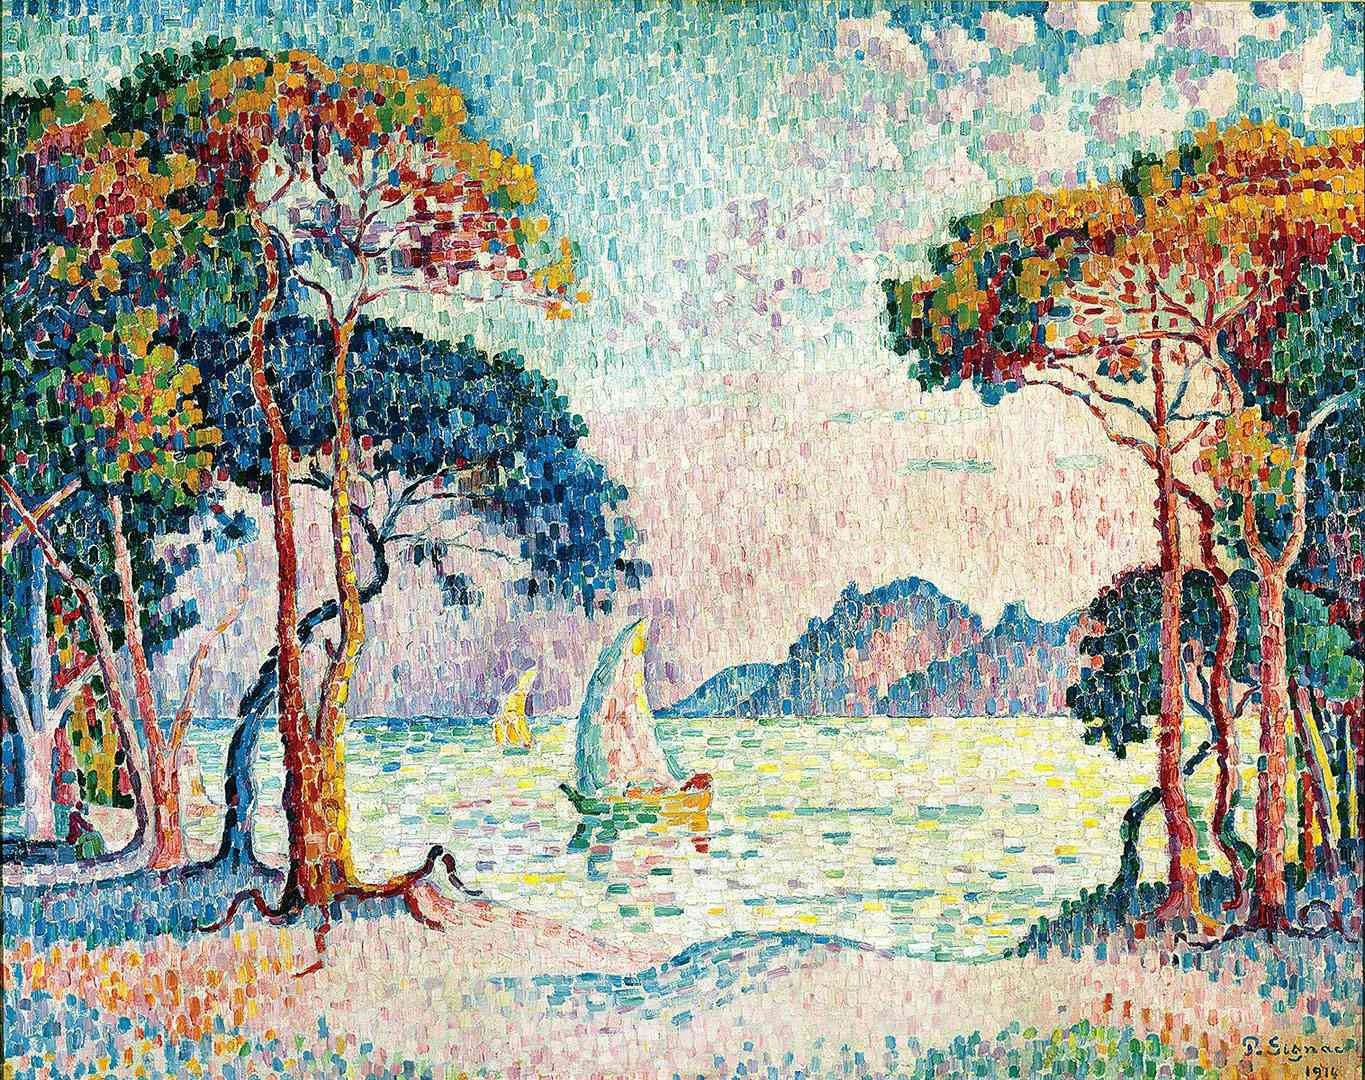 Paul Signac (1863-1935), Juan-les-Pins. Evening (detail), 1914, oil on canvas, 73 x 92 cm. Private collection. Photo Maurice Aeschiman, Geneva